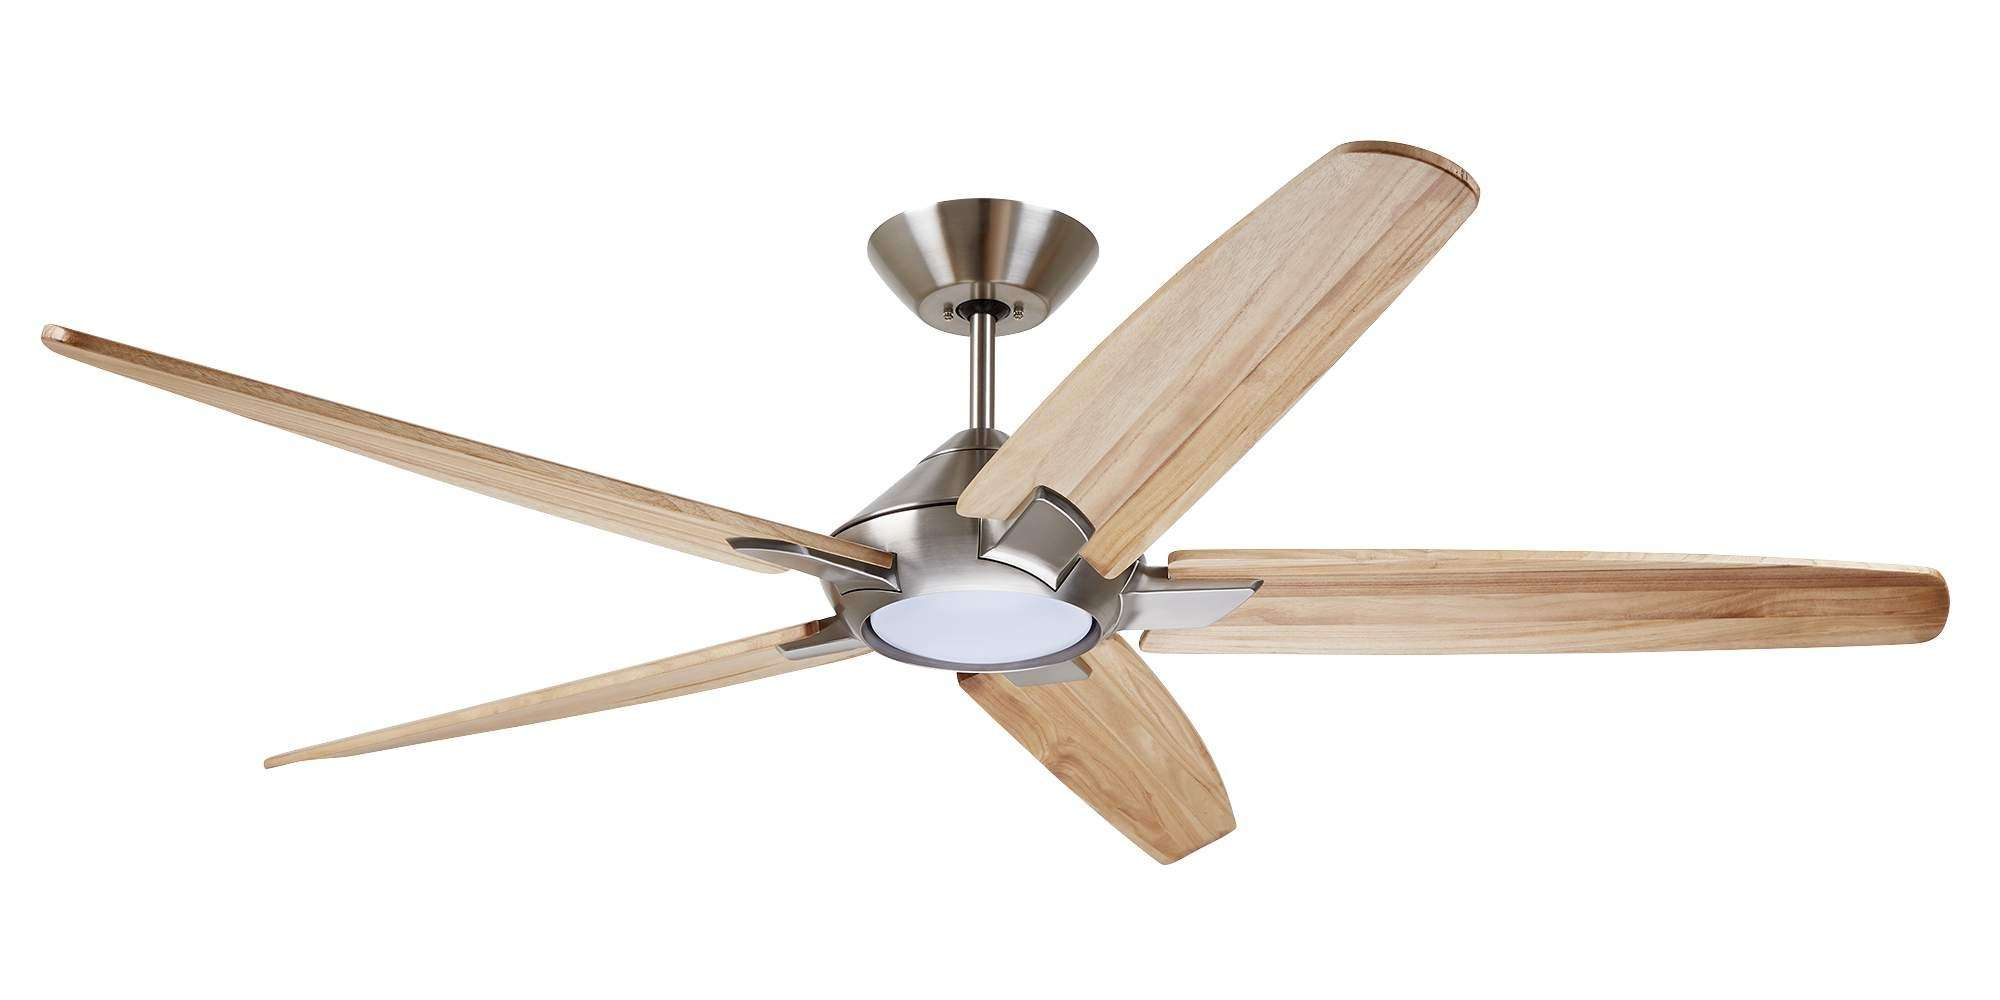 Emerson CF515NA60BS 60 Inch Dorian Eco Ceiling Fan in Brushed Steel with Curved Solid Wood Natural Finished Blades